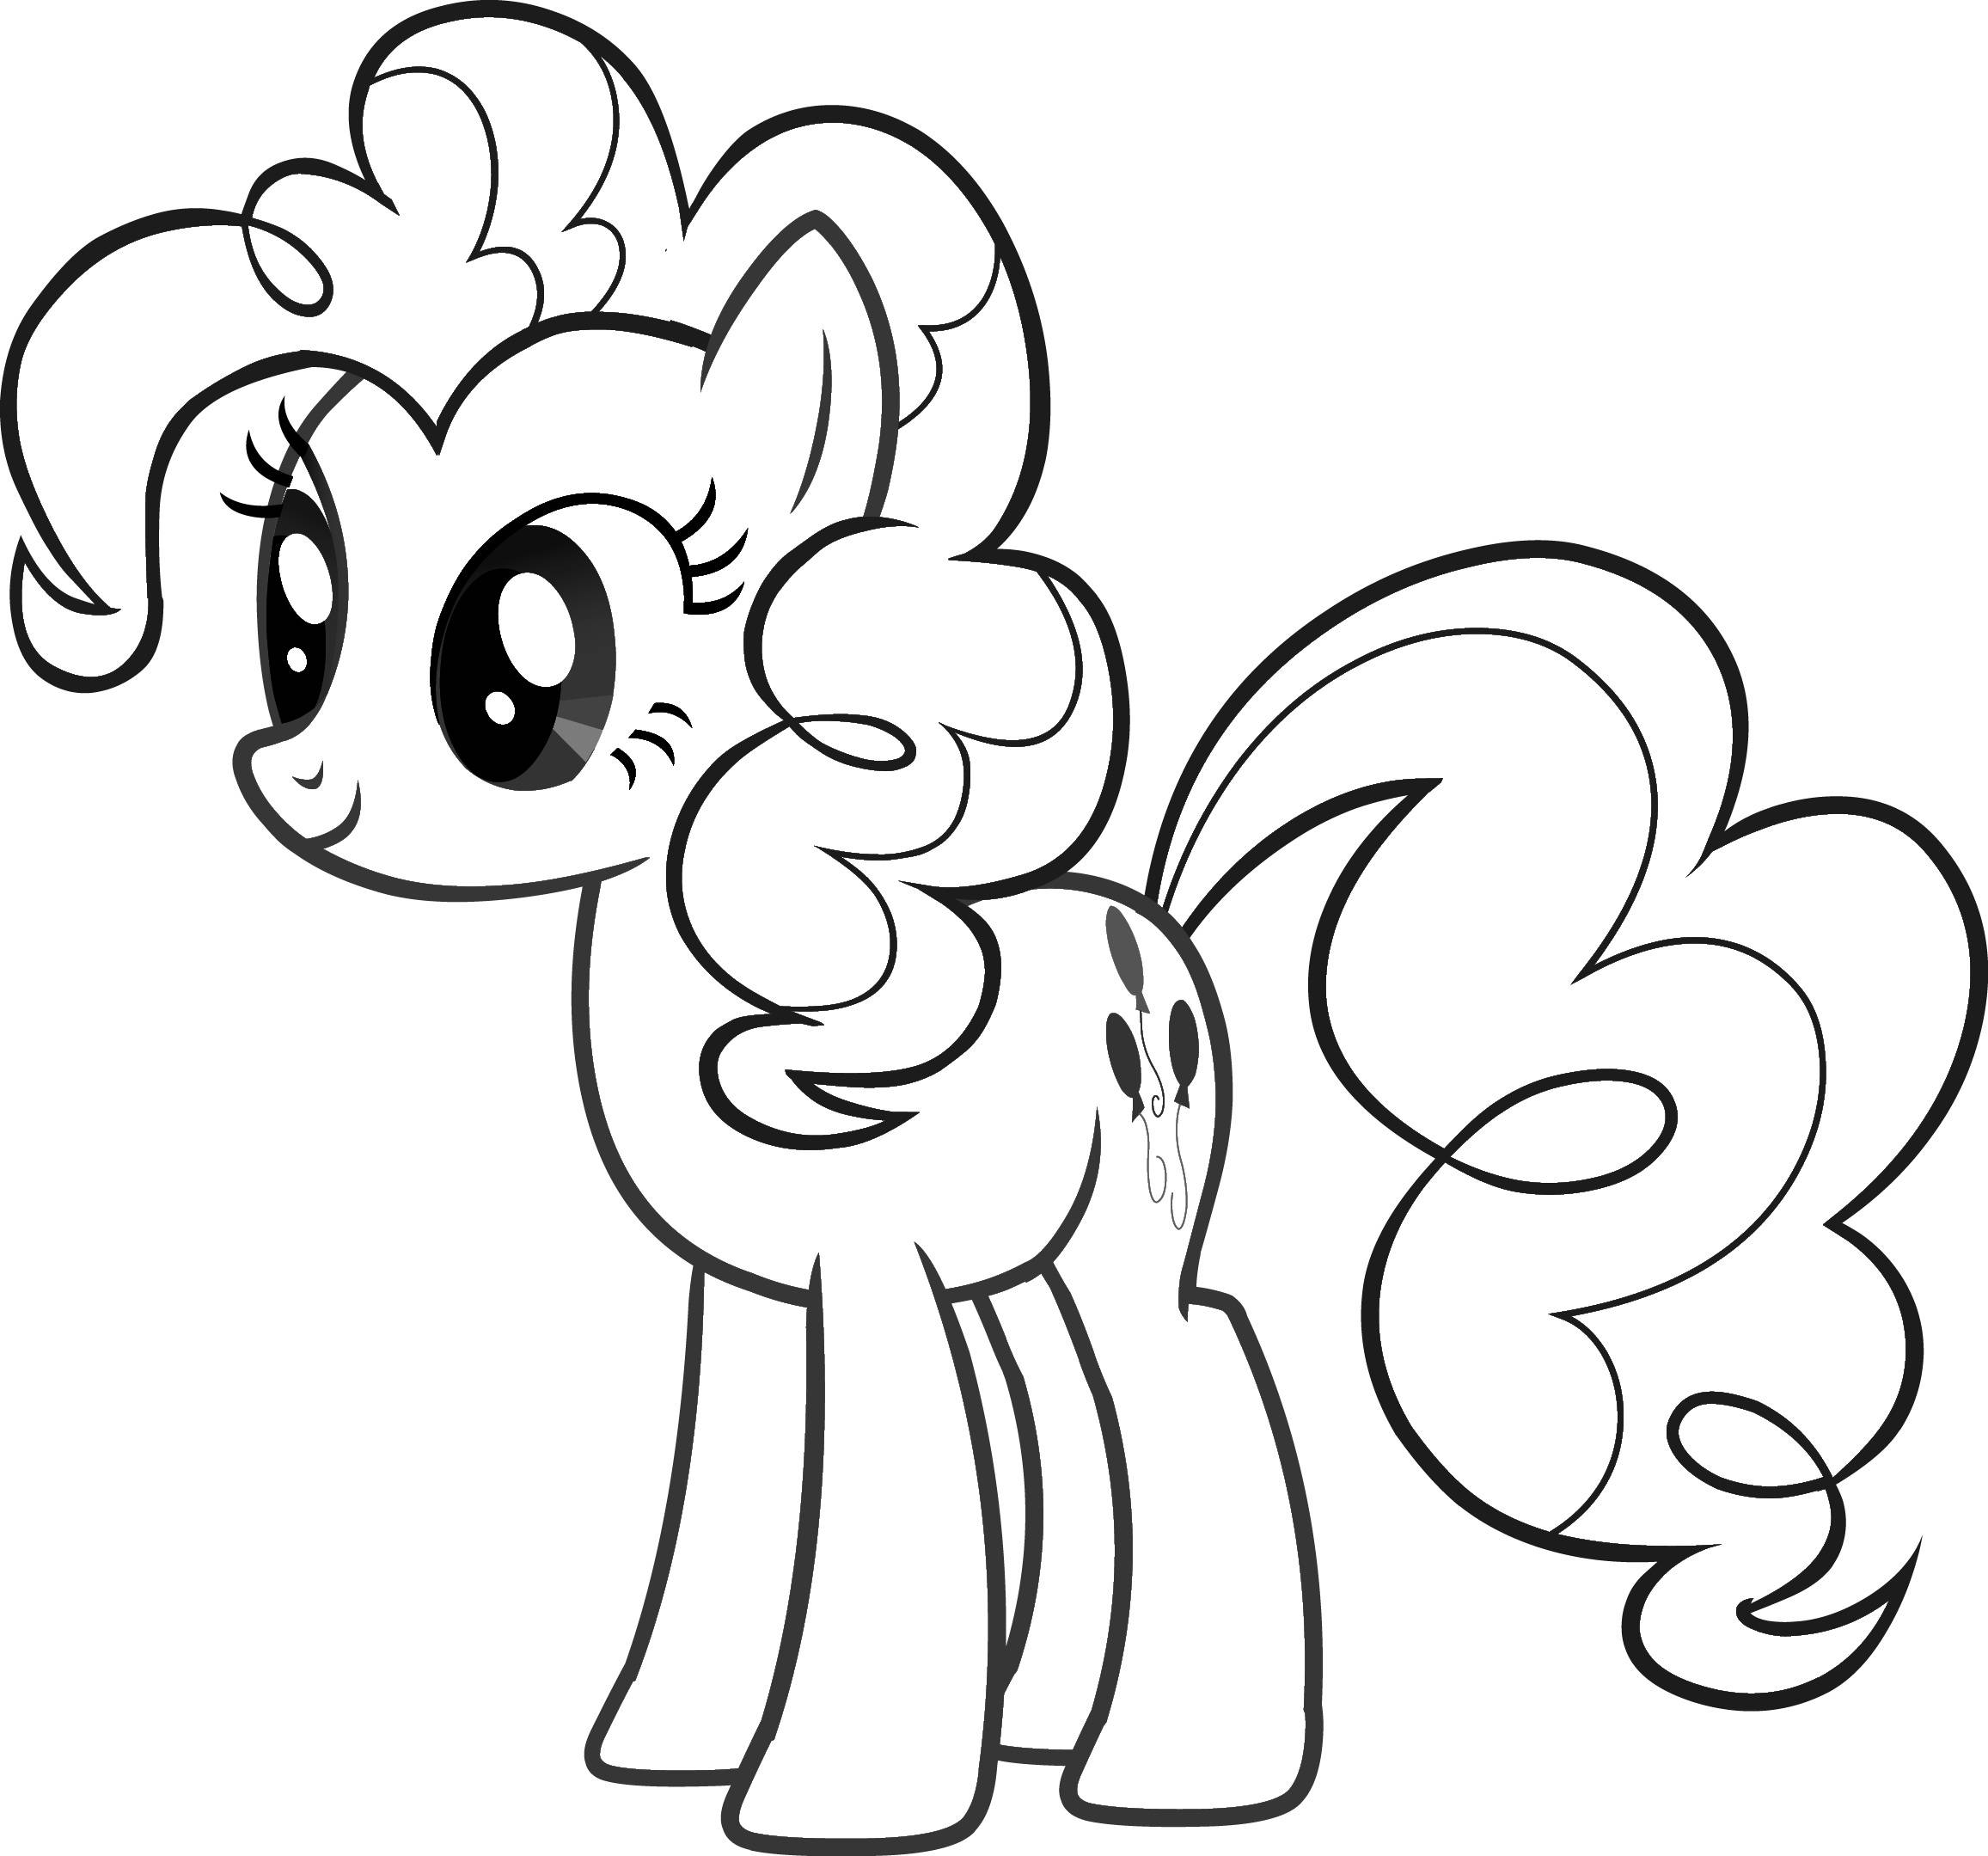 my little pony coloring pages - Colour Worksheet For Kids